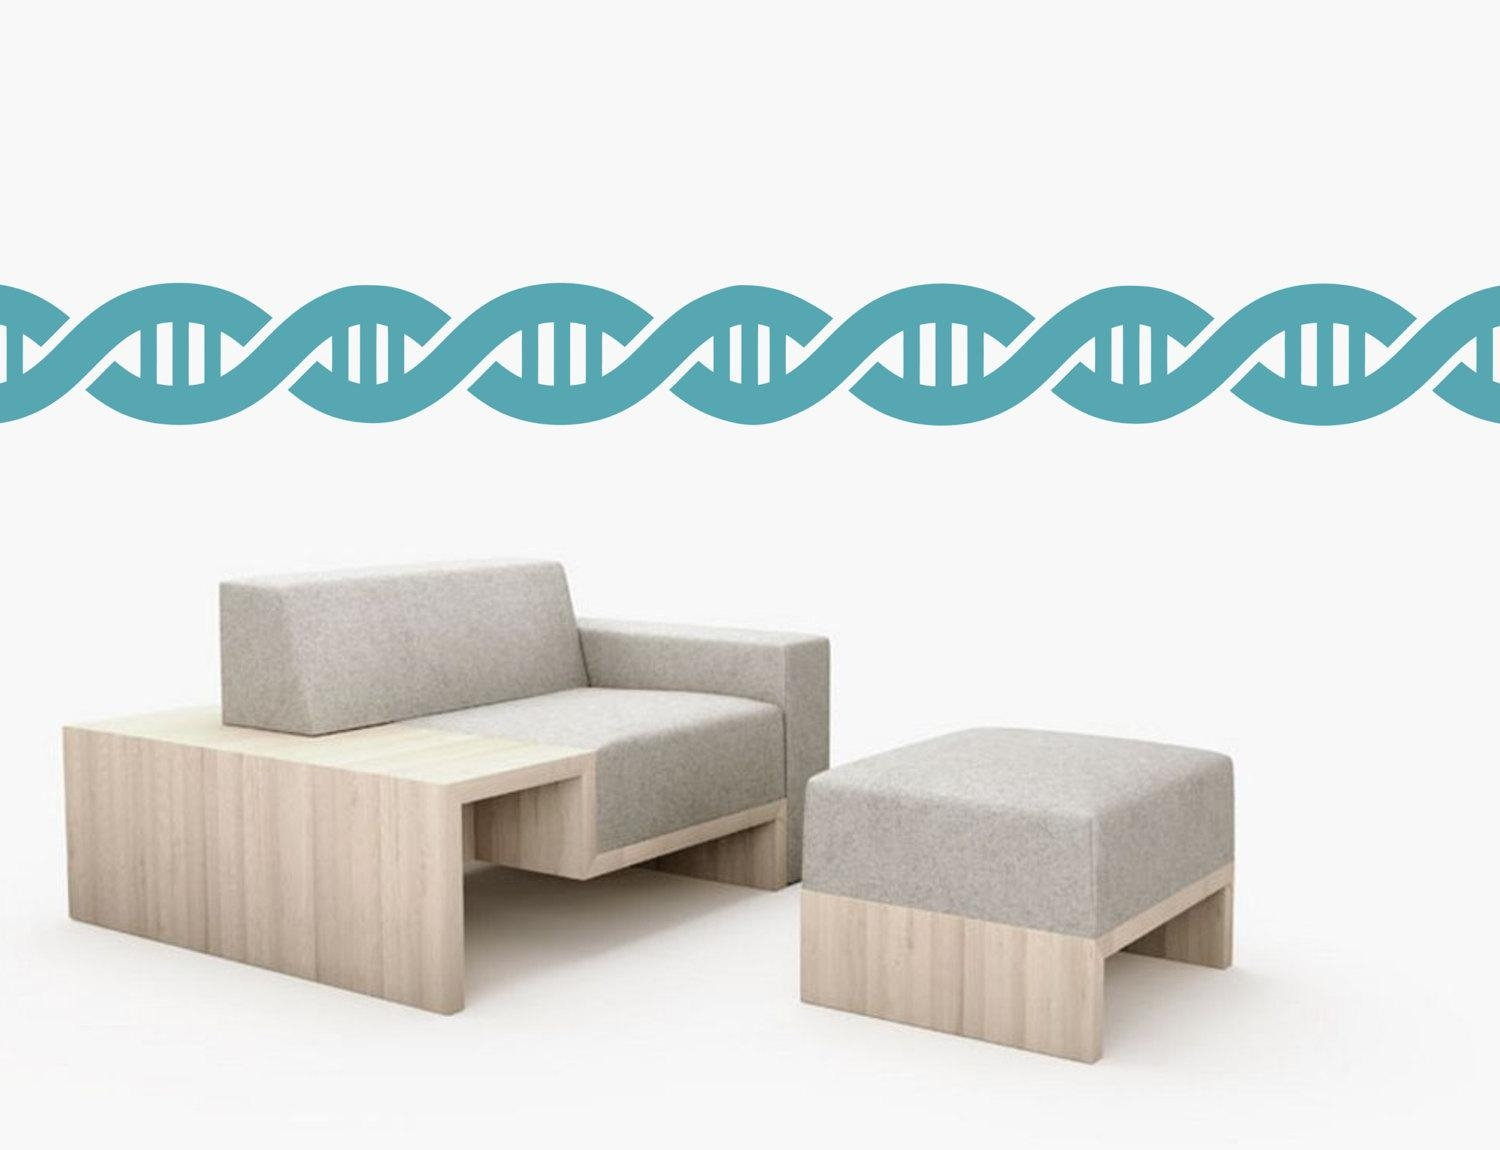 Dna Double Helix Stripes Wall Art Border Removable Vinyl In Dna Wall Art (View 12 of 20)